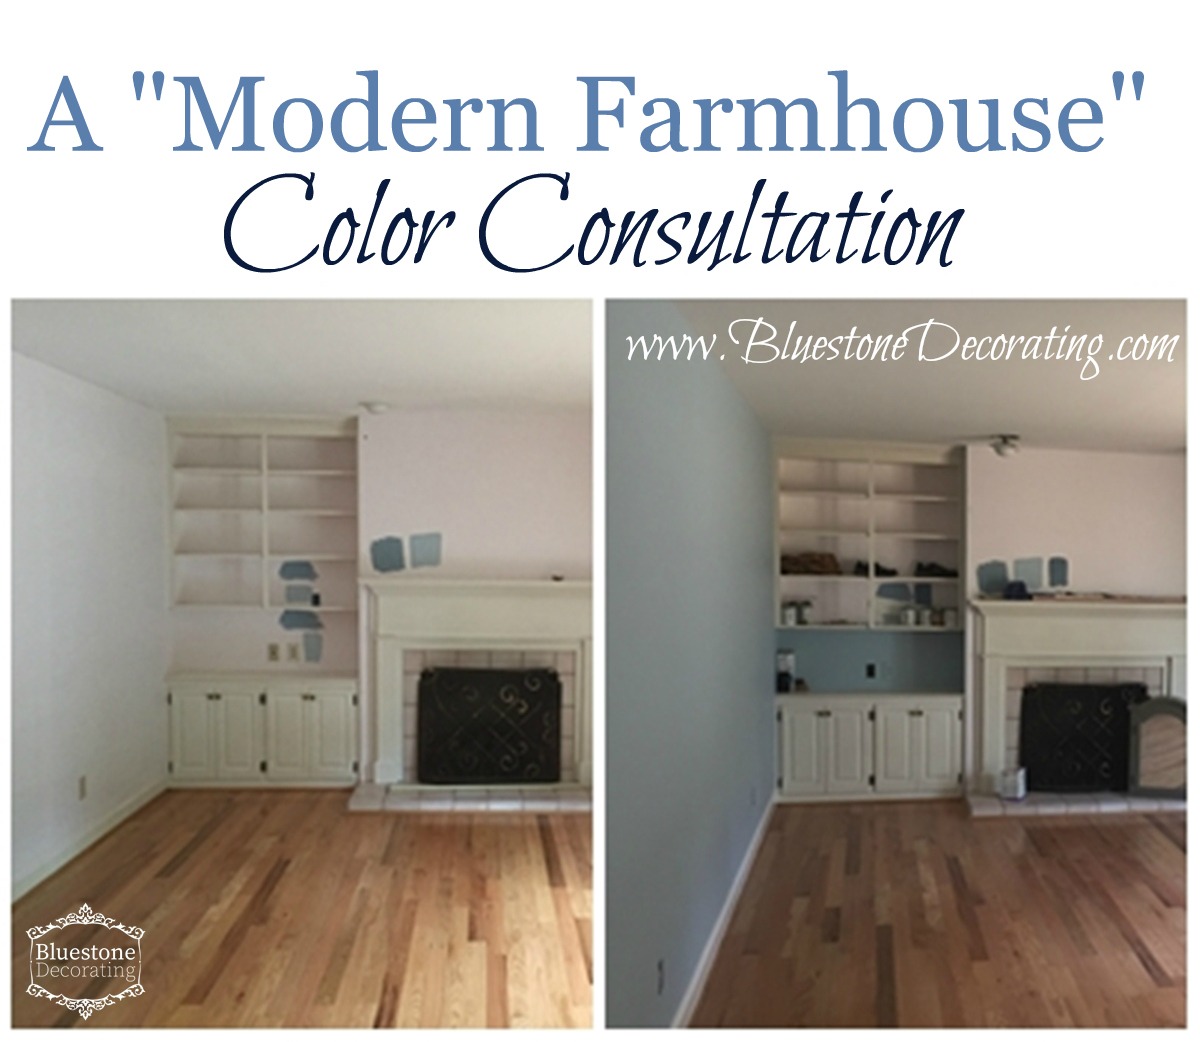 The Images Collection Of Modern Farmhouse Tour Interior: A Modern Farmhouse Color Consultation Helps Client Find